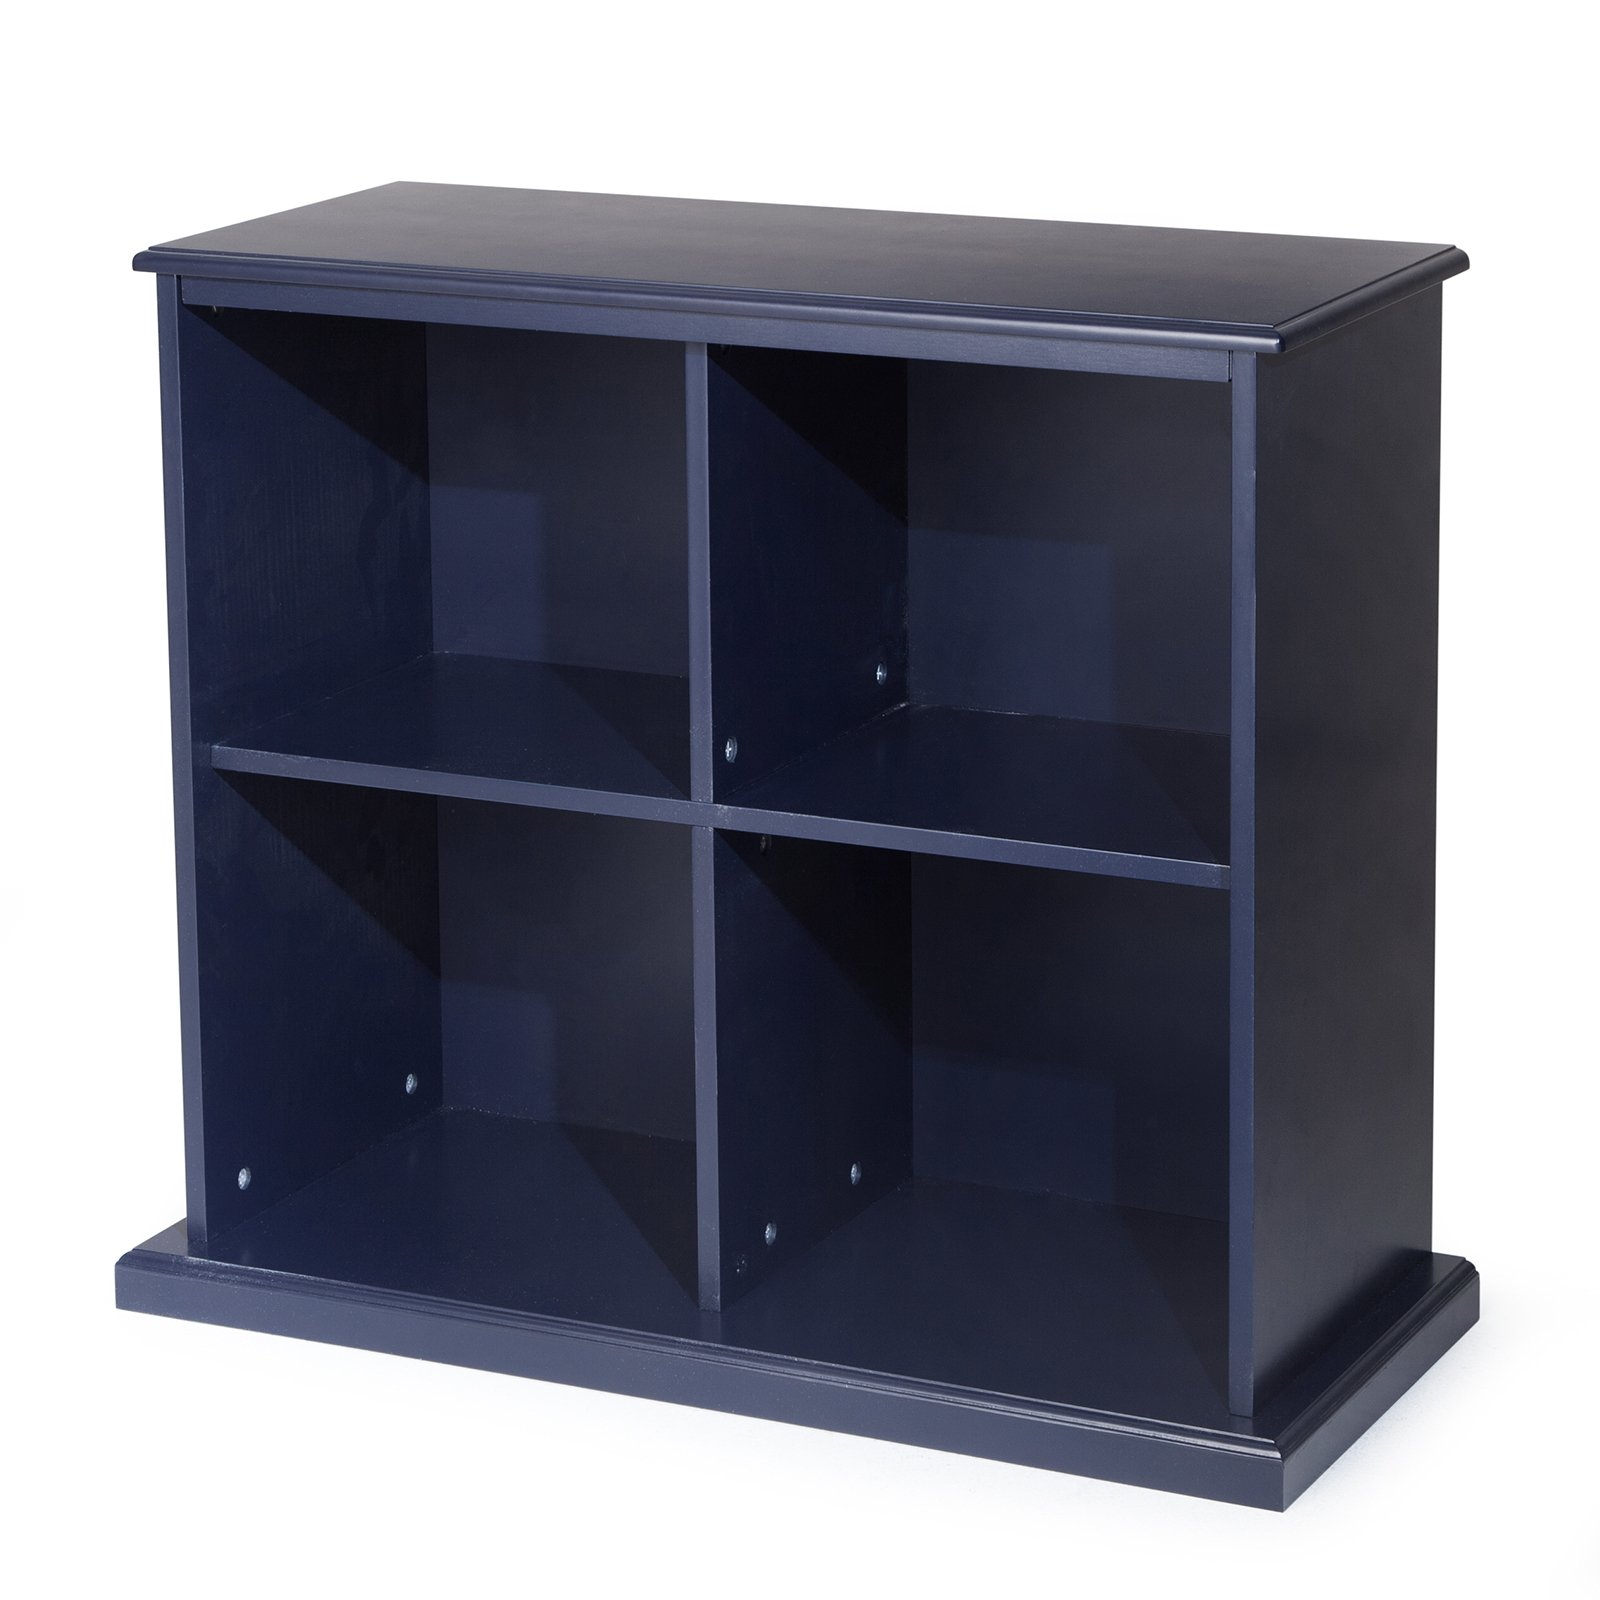 Classic Playtime Hopscotch Stackable Toy Storage - Navy